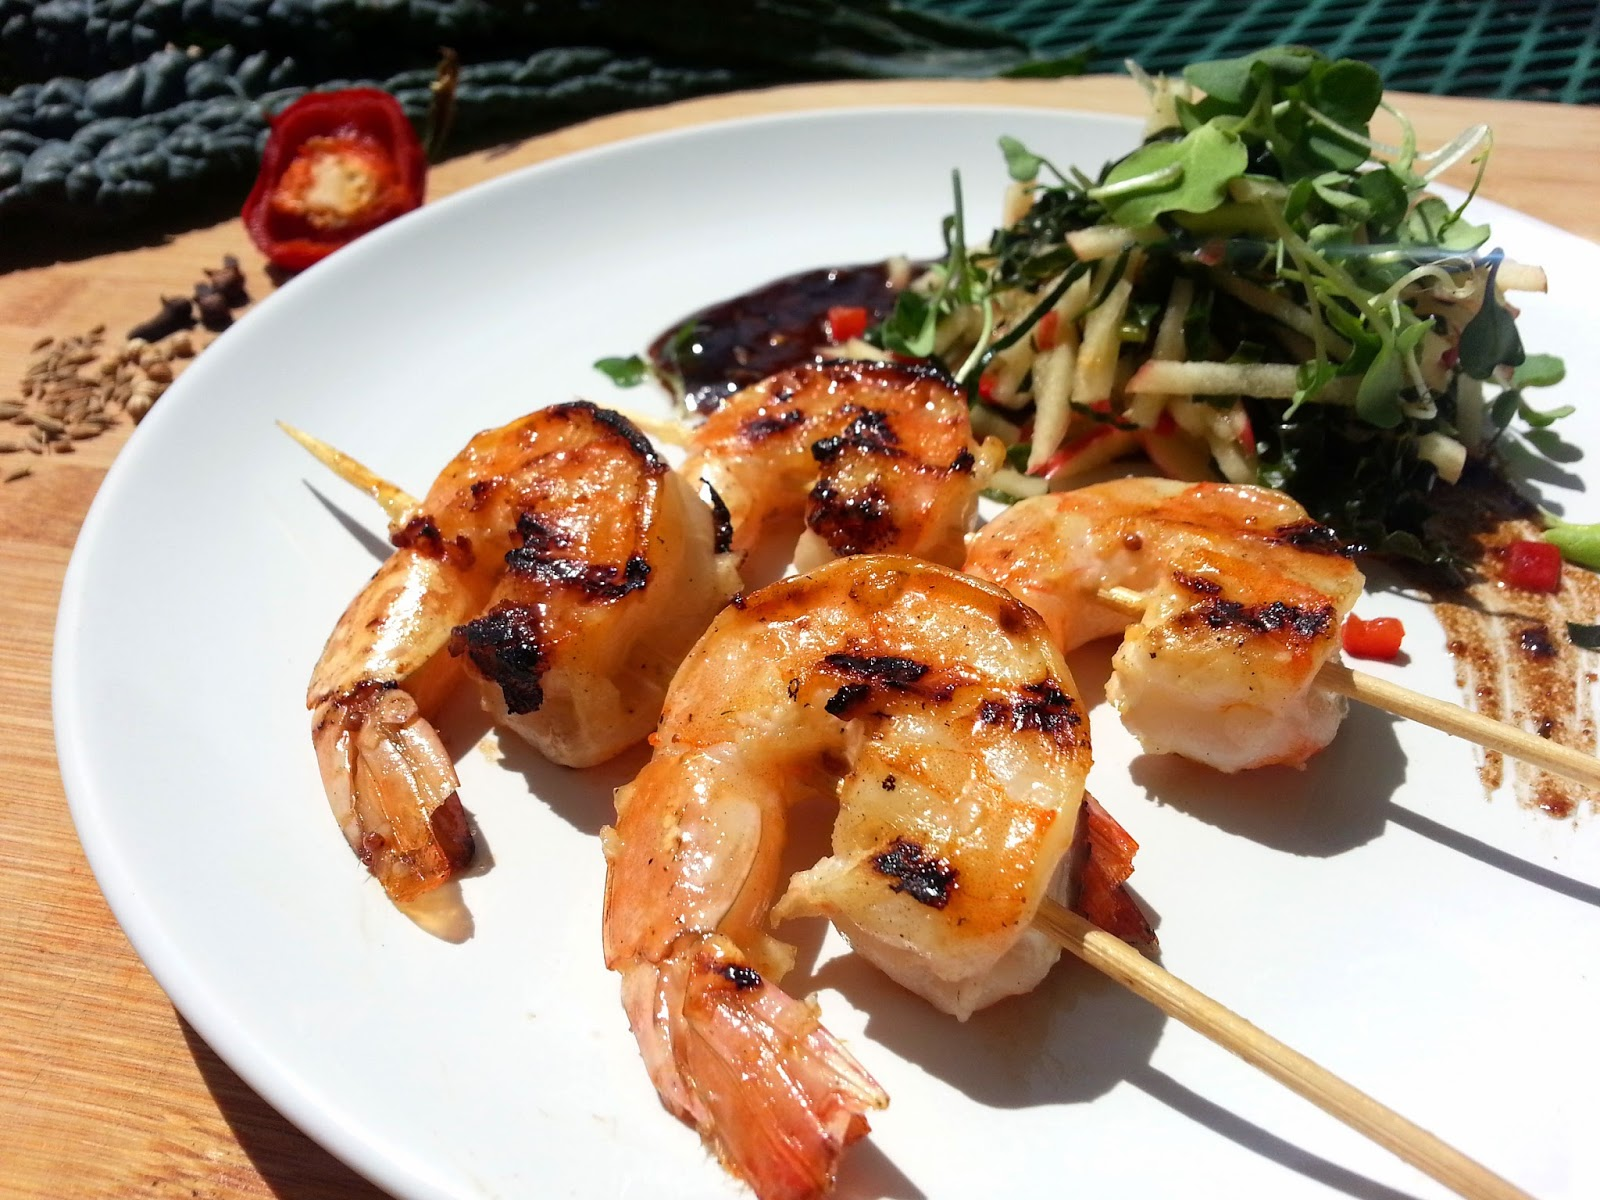 Honey Dijon Grilled Shrimp with Spicy Apple and Kale Salad